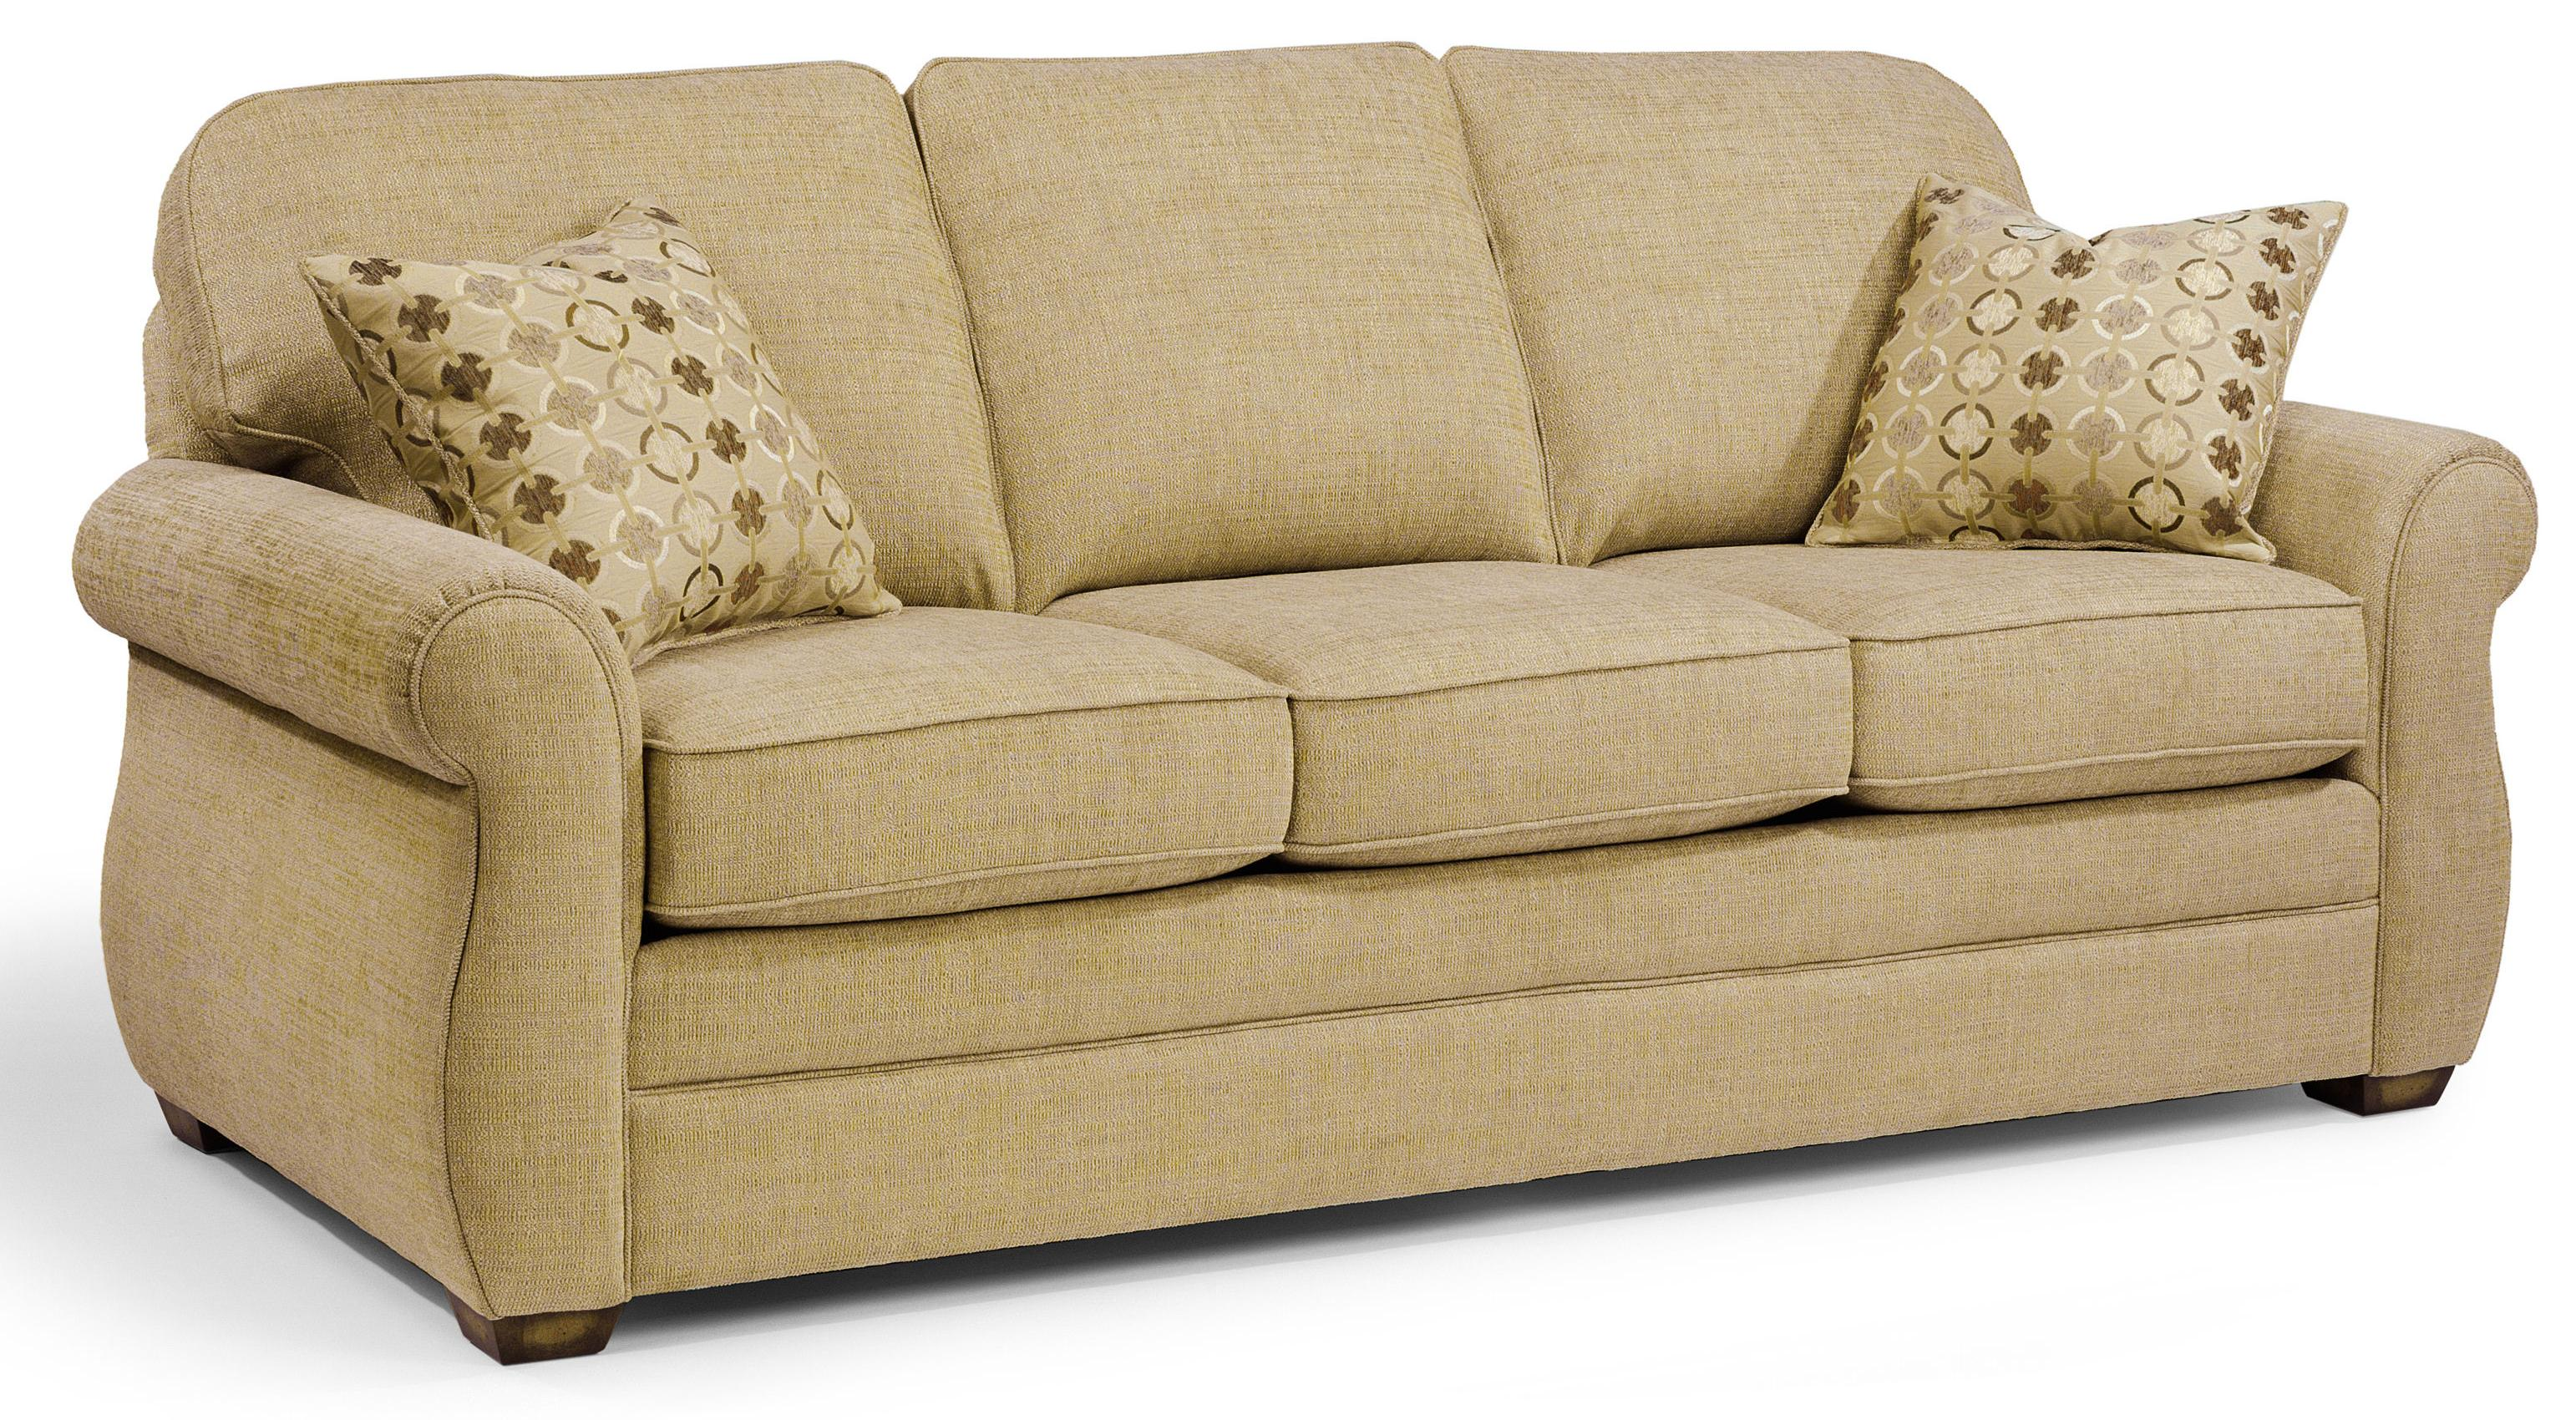 Flexsteel Whitney Sofa With Turned Arms And Wood Block